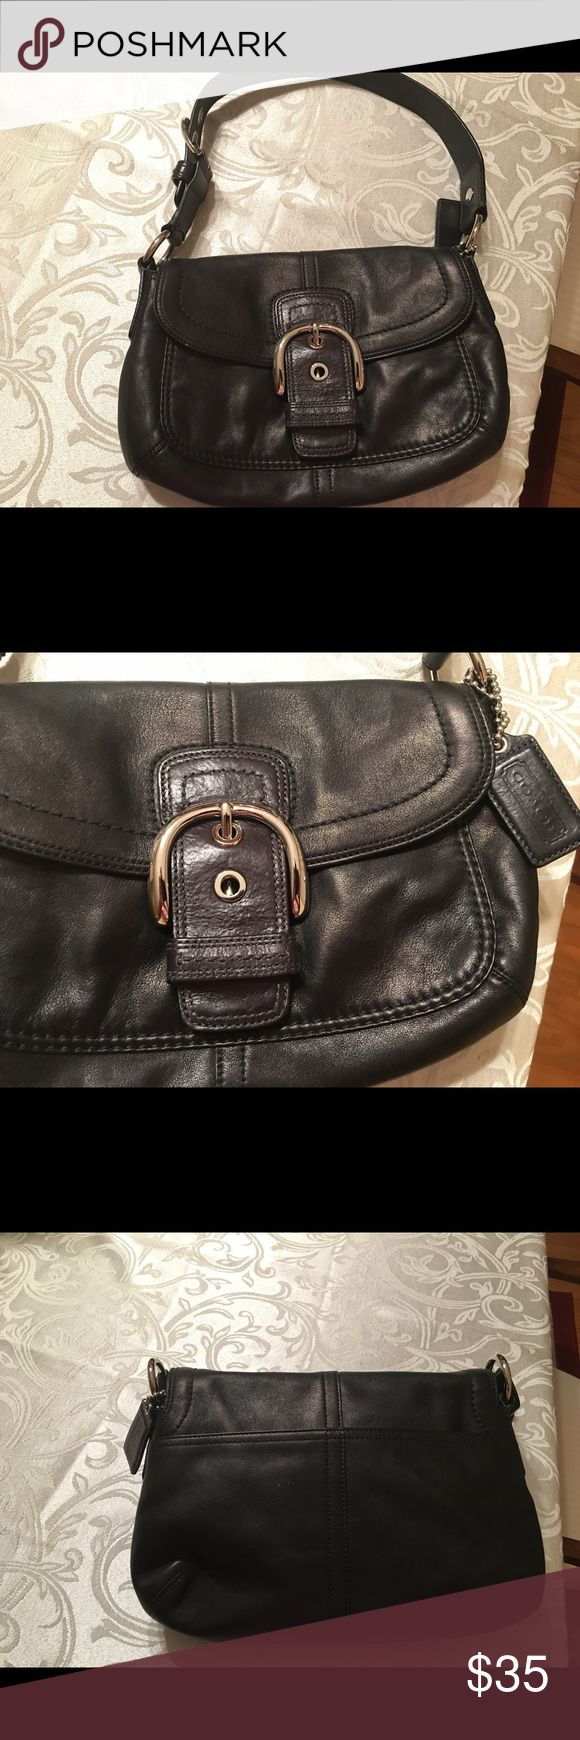 Authentic Coach Black Leather Purse COACH black purse - black leather strap/handle - silver buckles - front opens/ closes with magnet - inside 1 large pocket, 1 medium pocket, and 2 small pockets - back of purse is pocket - authentic - great condition Bags Totes